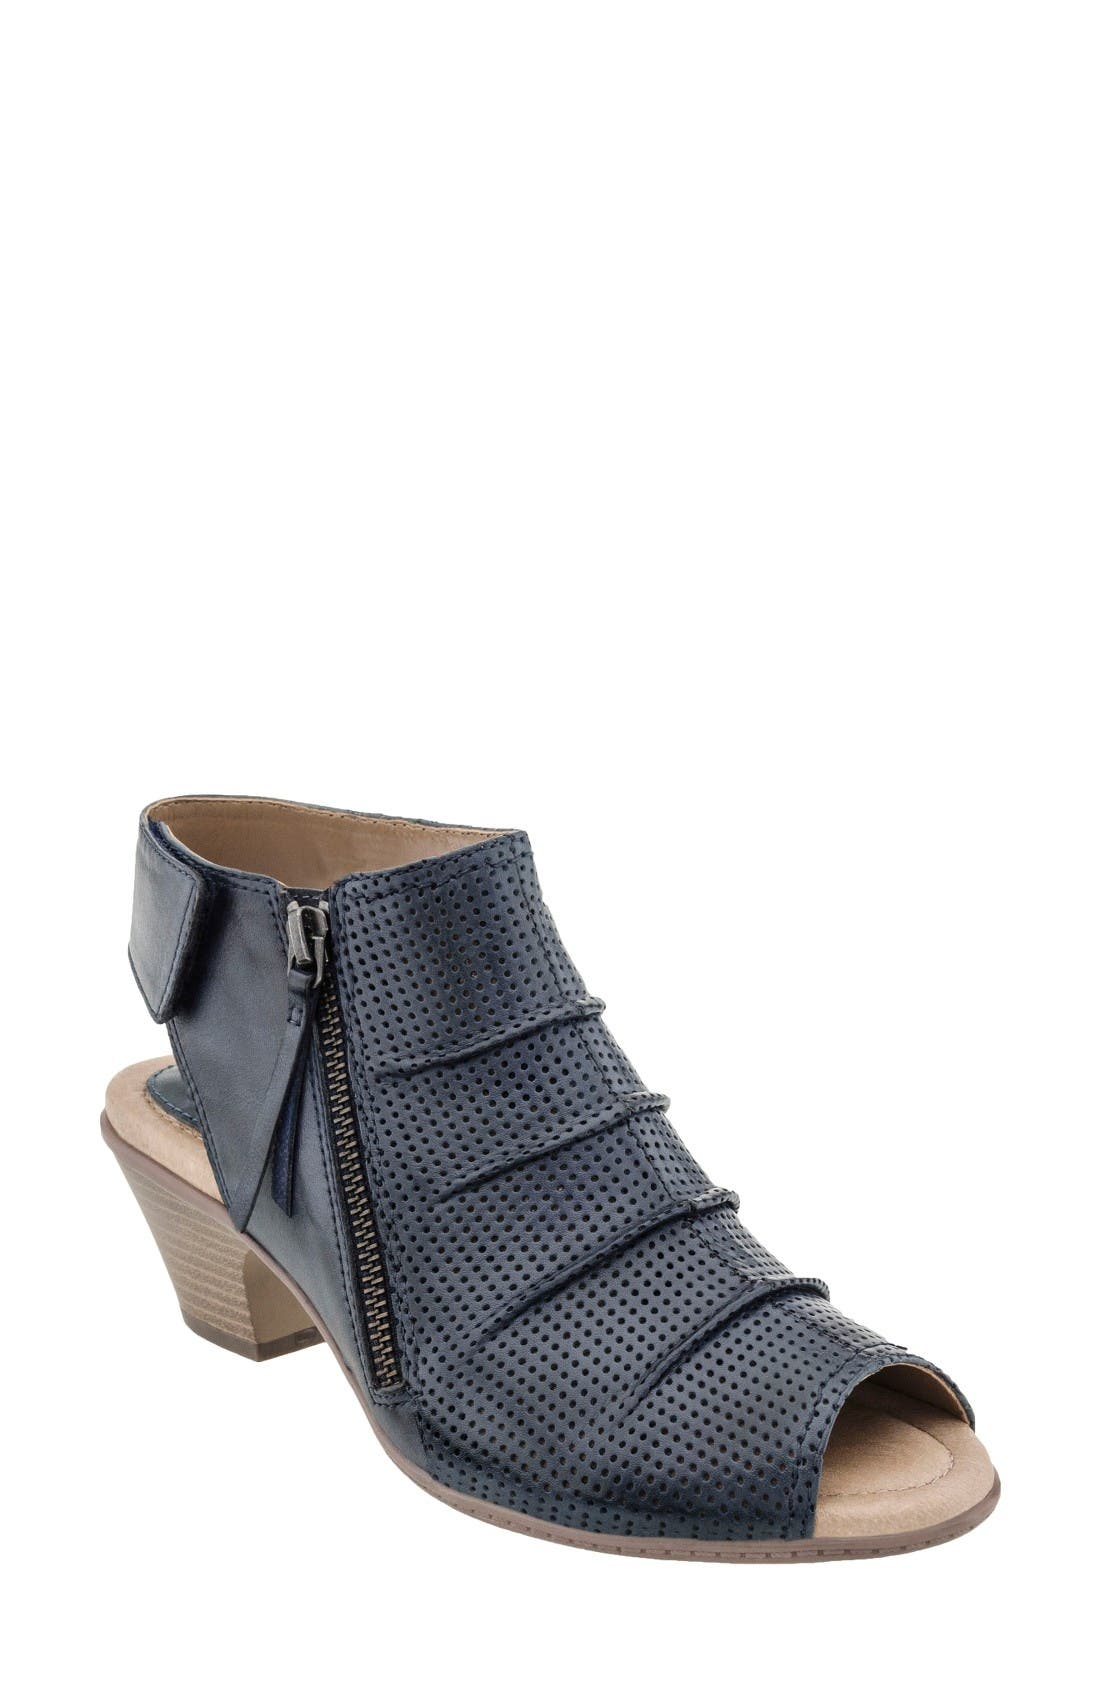 Hydra Sandal,                         Main,                         color, Admiral Blue Soft Leather